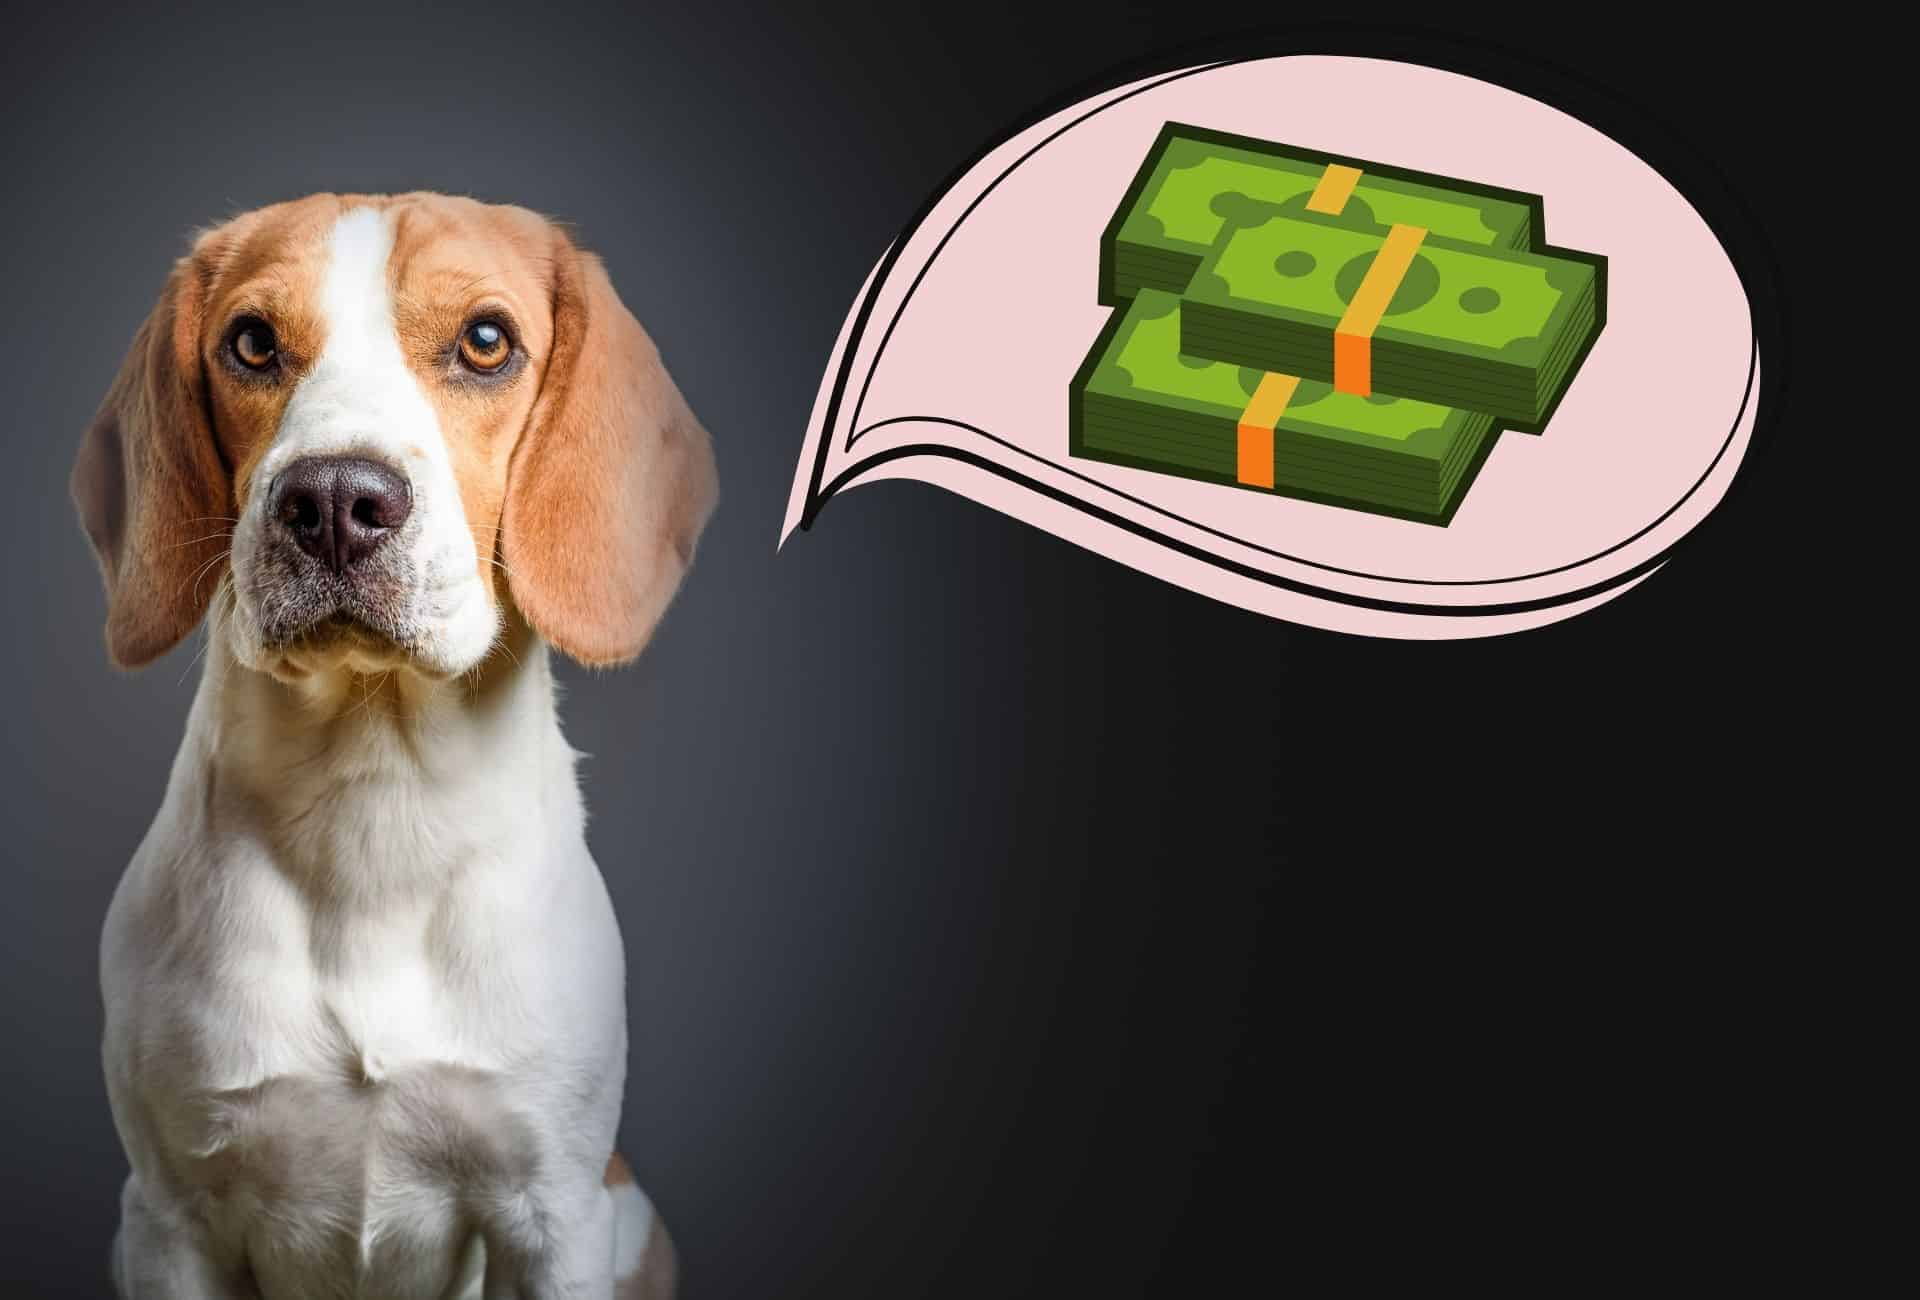 Beagle pup with a bundle of cash in a speech bubble.